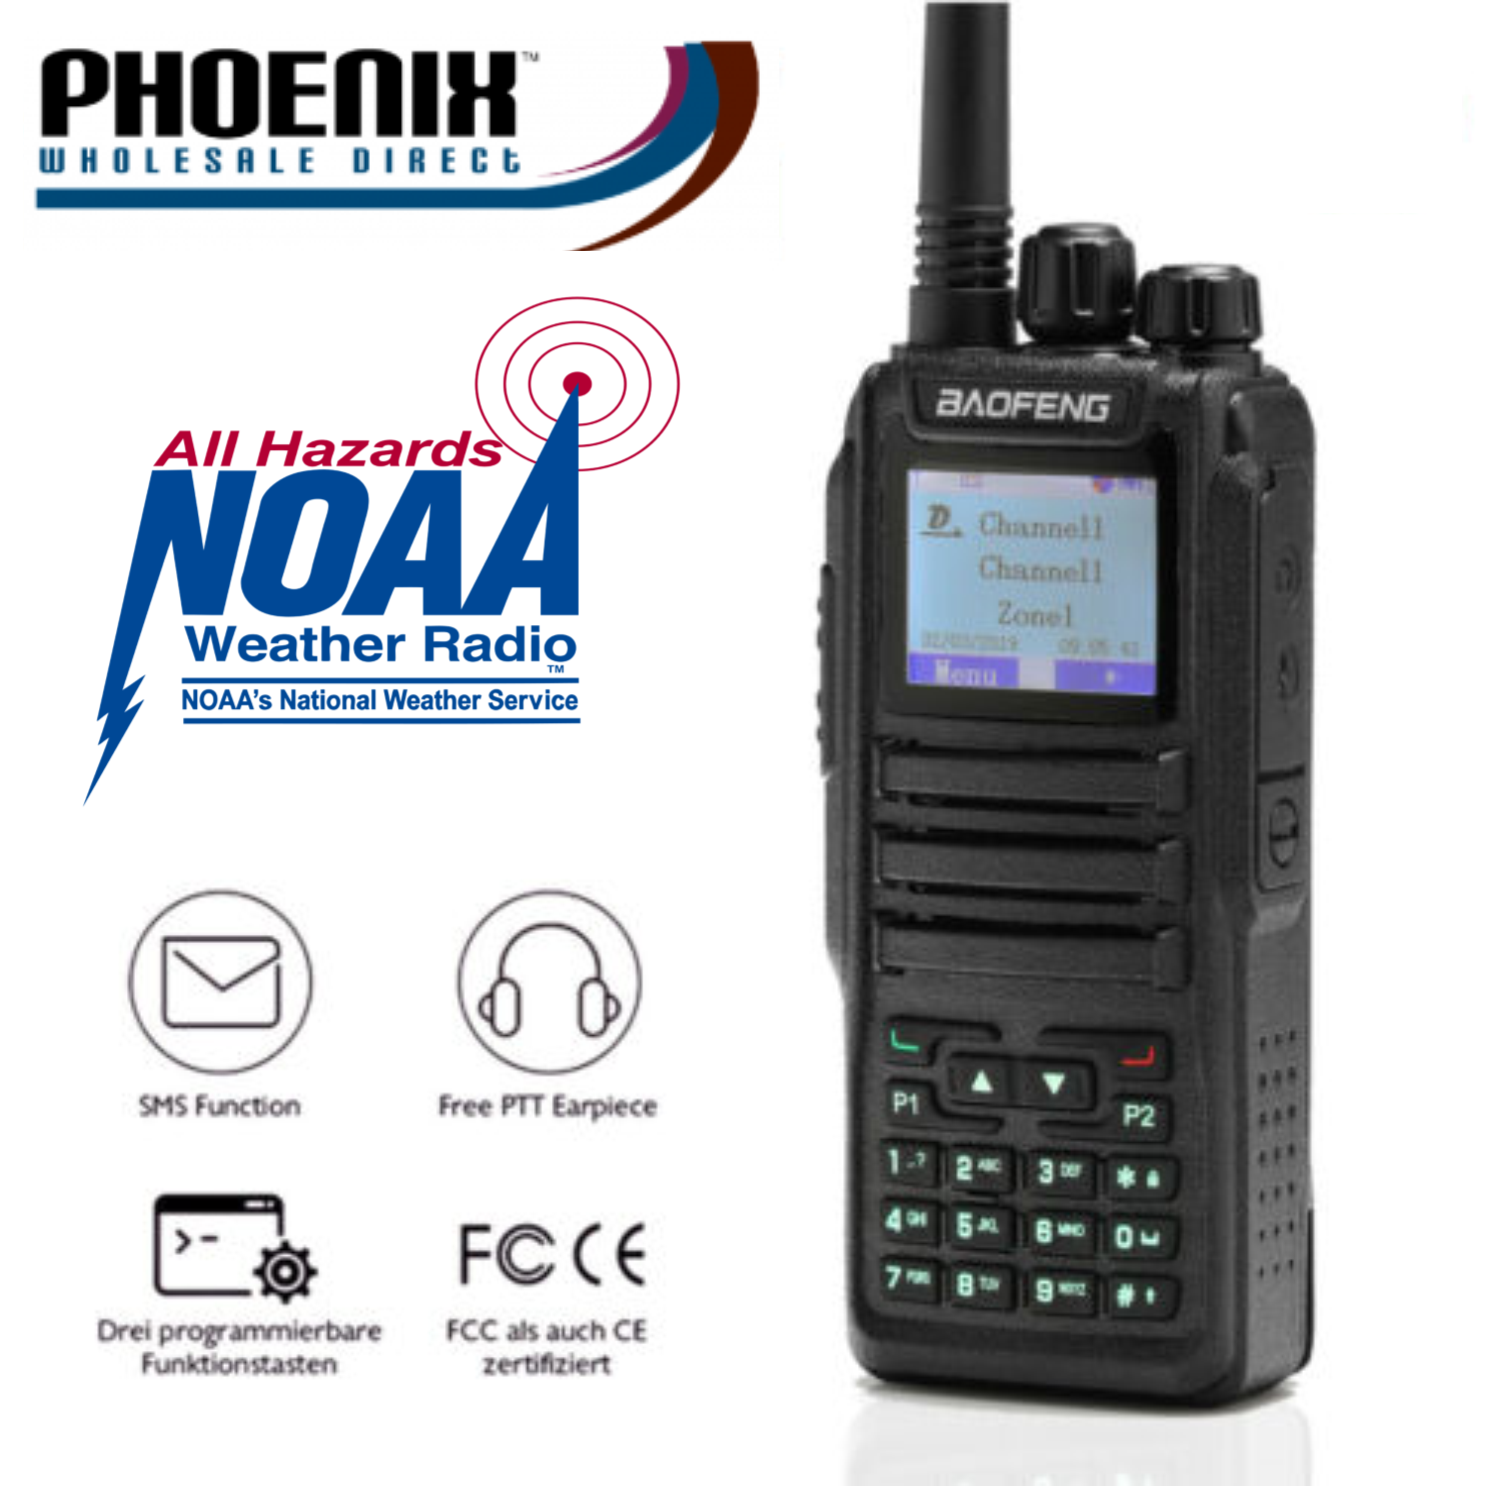 Digital Handheld Police Scanner - 3000 Channel - MAX POWER S